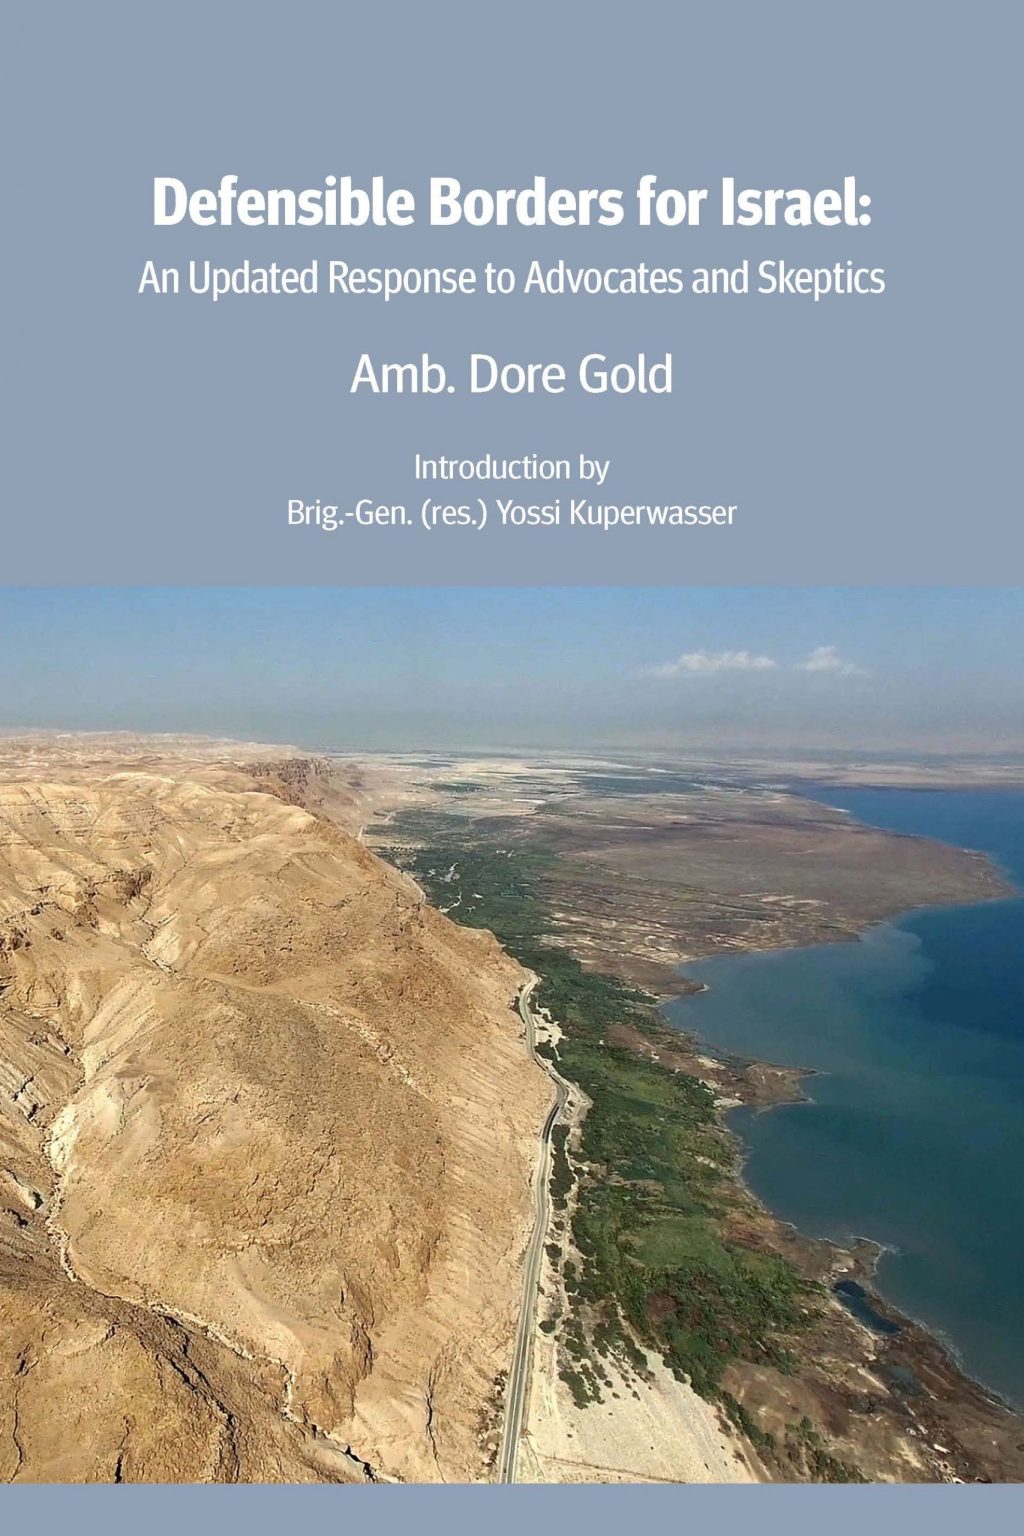 Defensible Borders for Israel: An Updated Response to Advocates and Skeptics